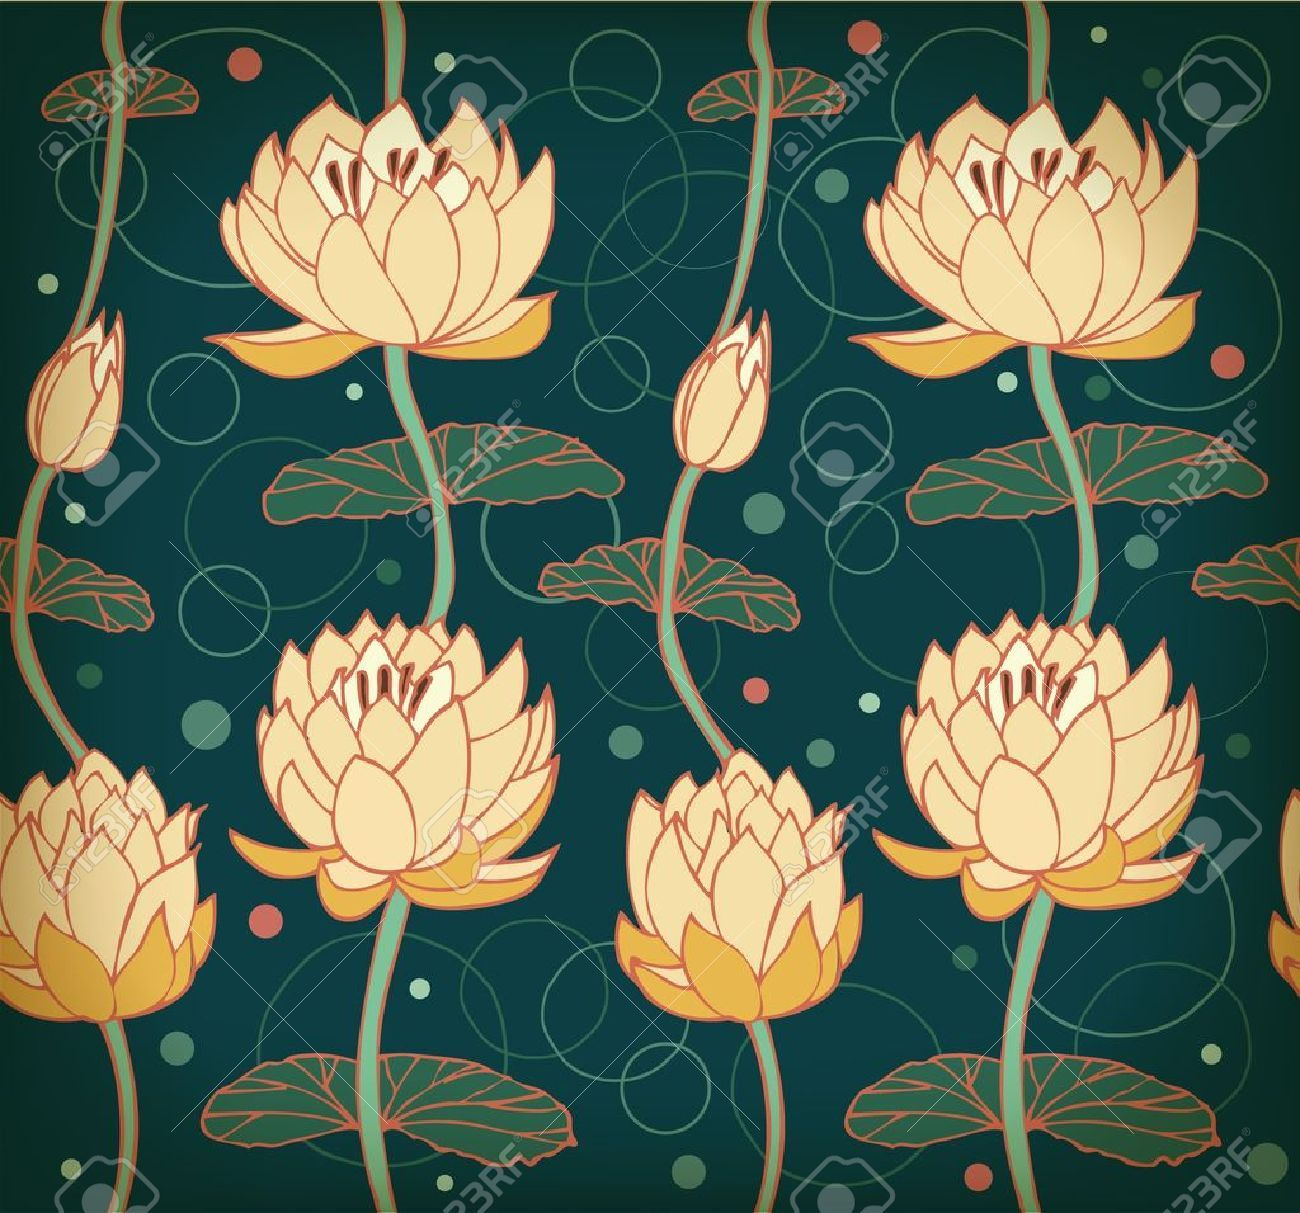 Lotus background floral pattern with water lilies seamless lotus background floral pattern with water lilies seamless royalty free cliparts vectors and stock illustration pic 18371959 izmirmasajfo